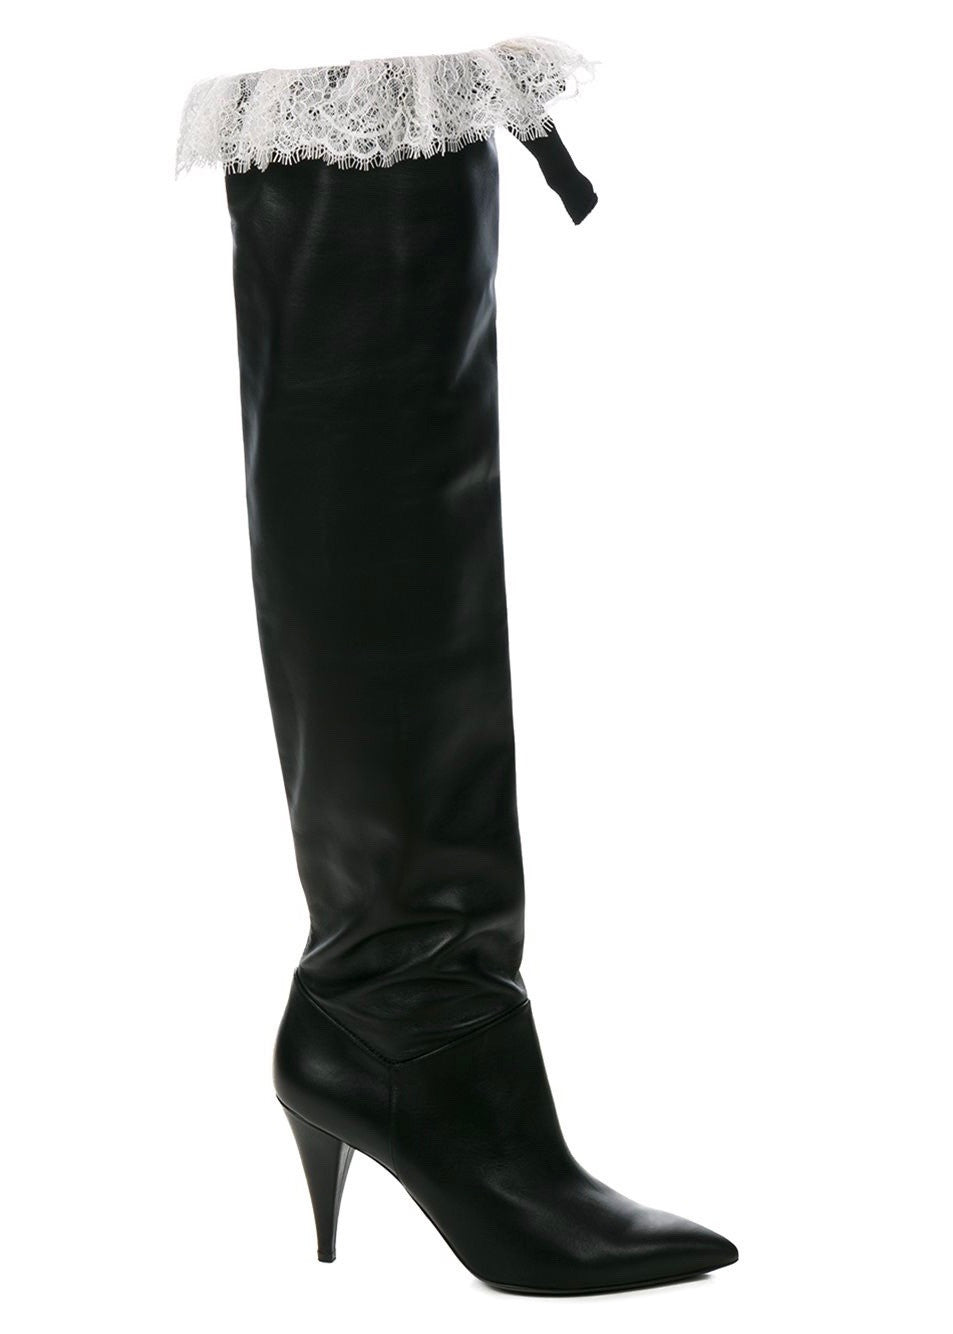 Philosophy di Lorenzo Serafini tall leather boots black